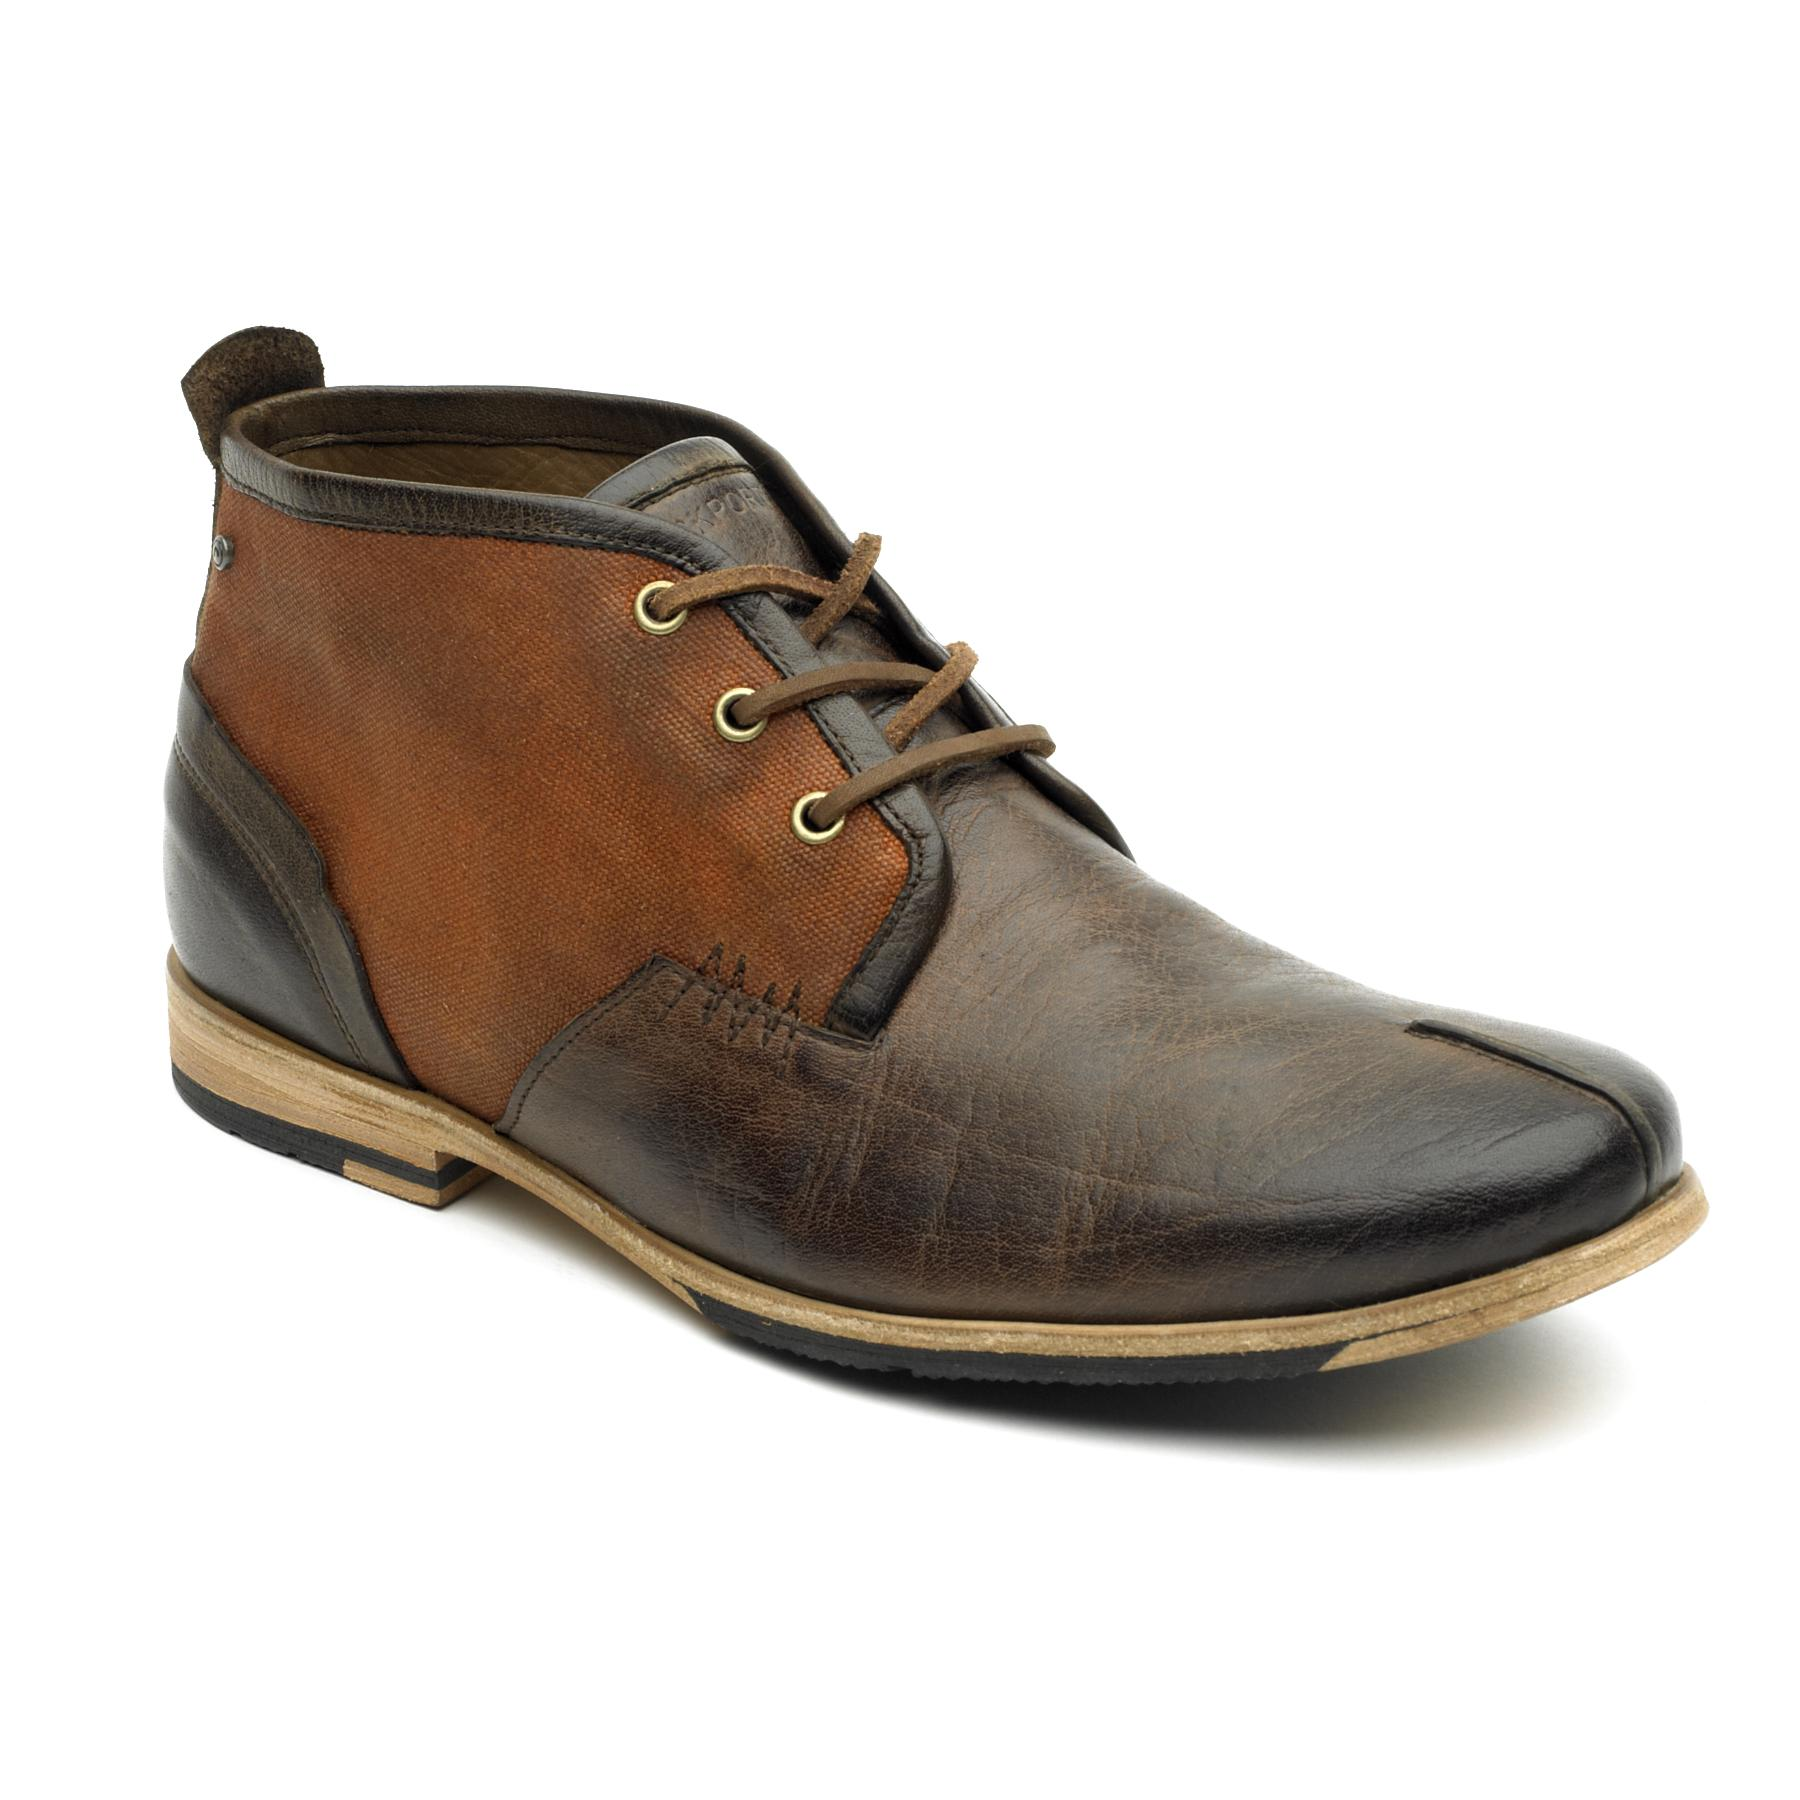 By Zapatos Rockport Rockport By Adidas Adidas By Adidas Zapatos Zapatos Rockport Zapatos bgY6y7vf